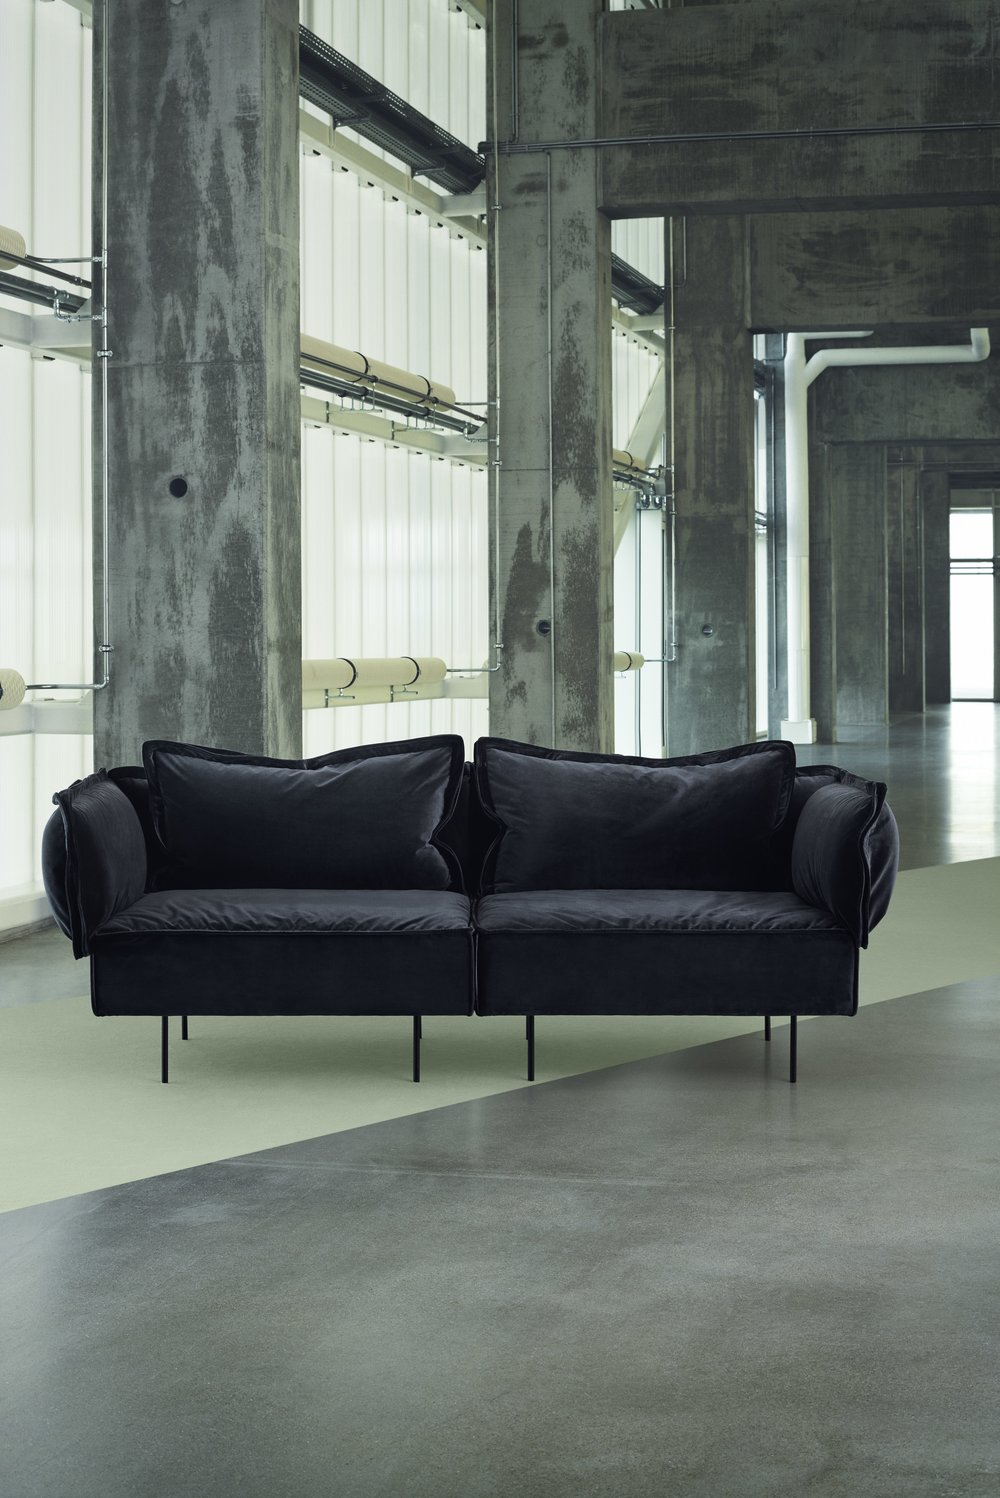 _HANDVARK CAMPAIGN 2017 - Modular Sofa in Dark Grey.jpeg